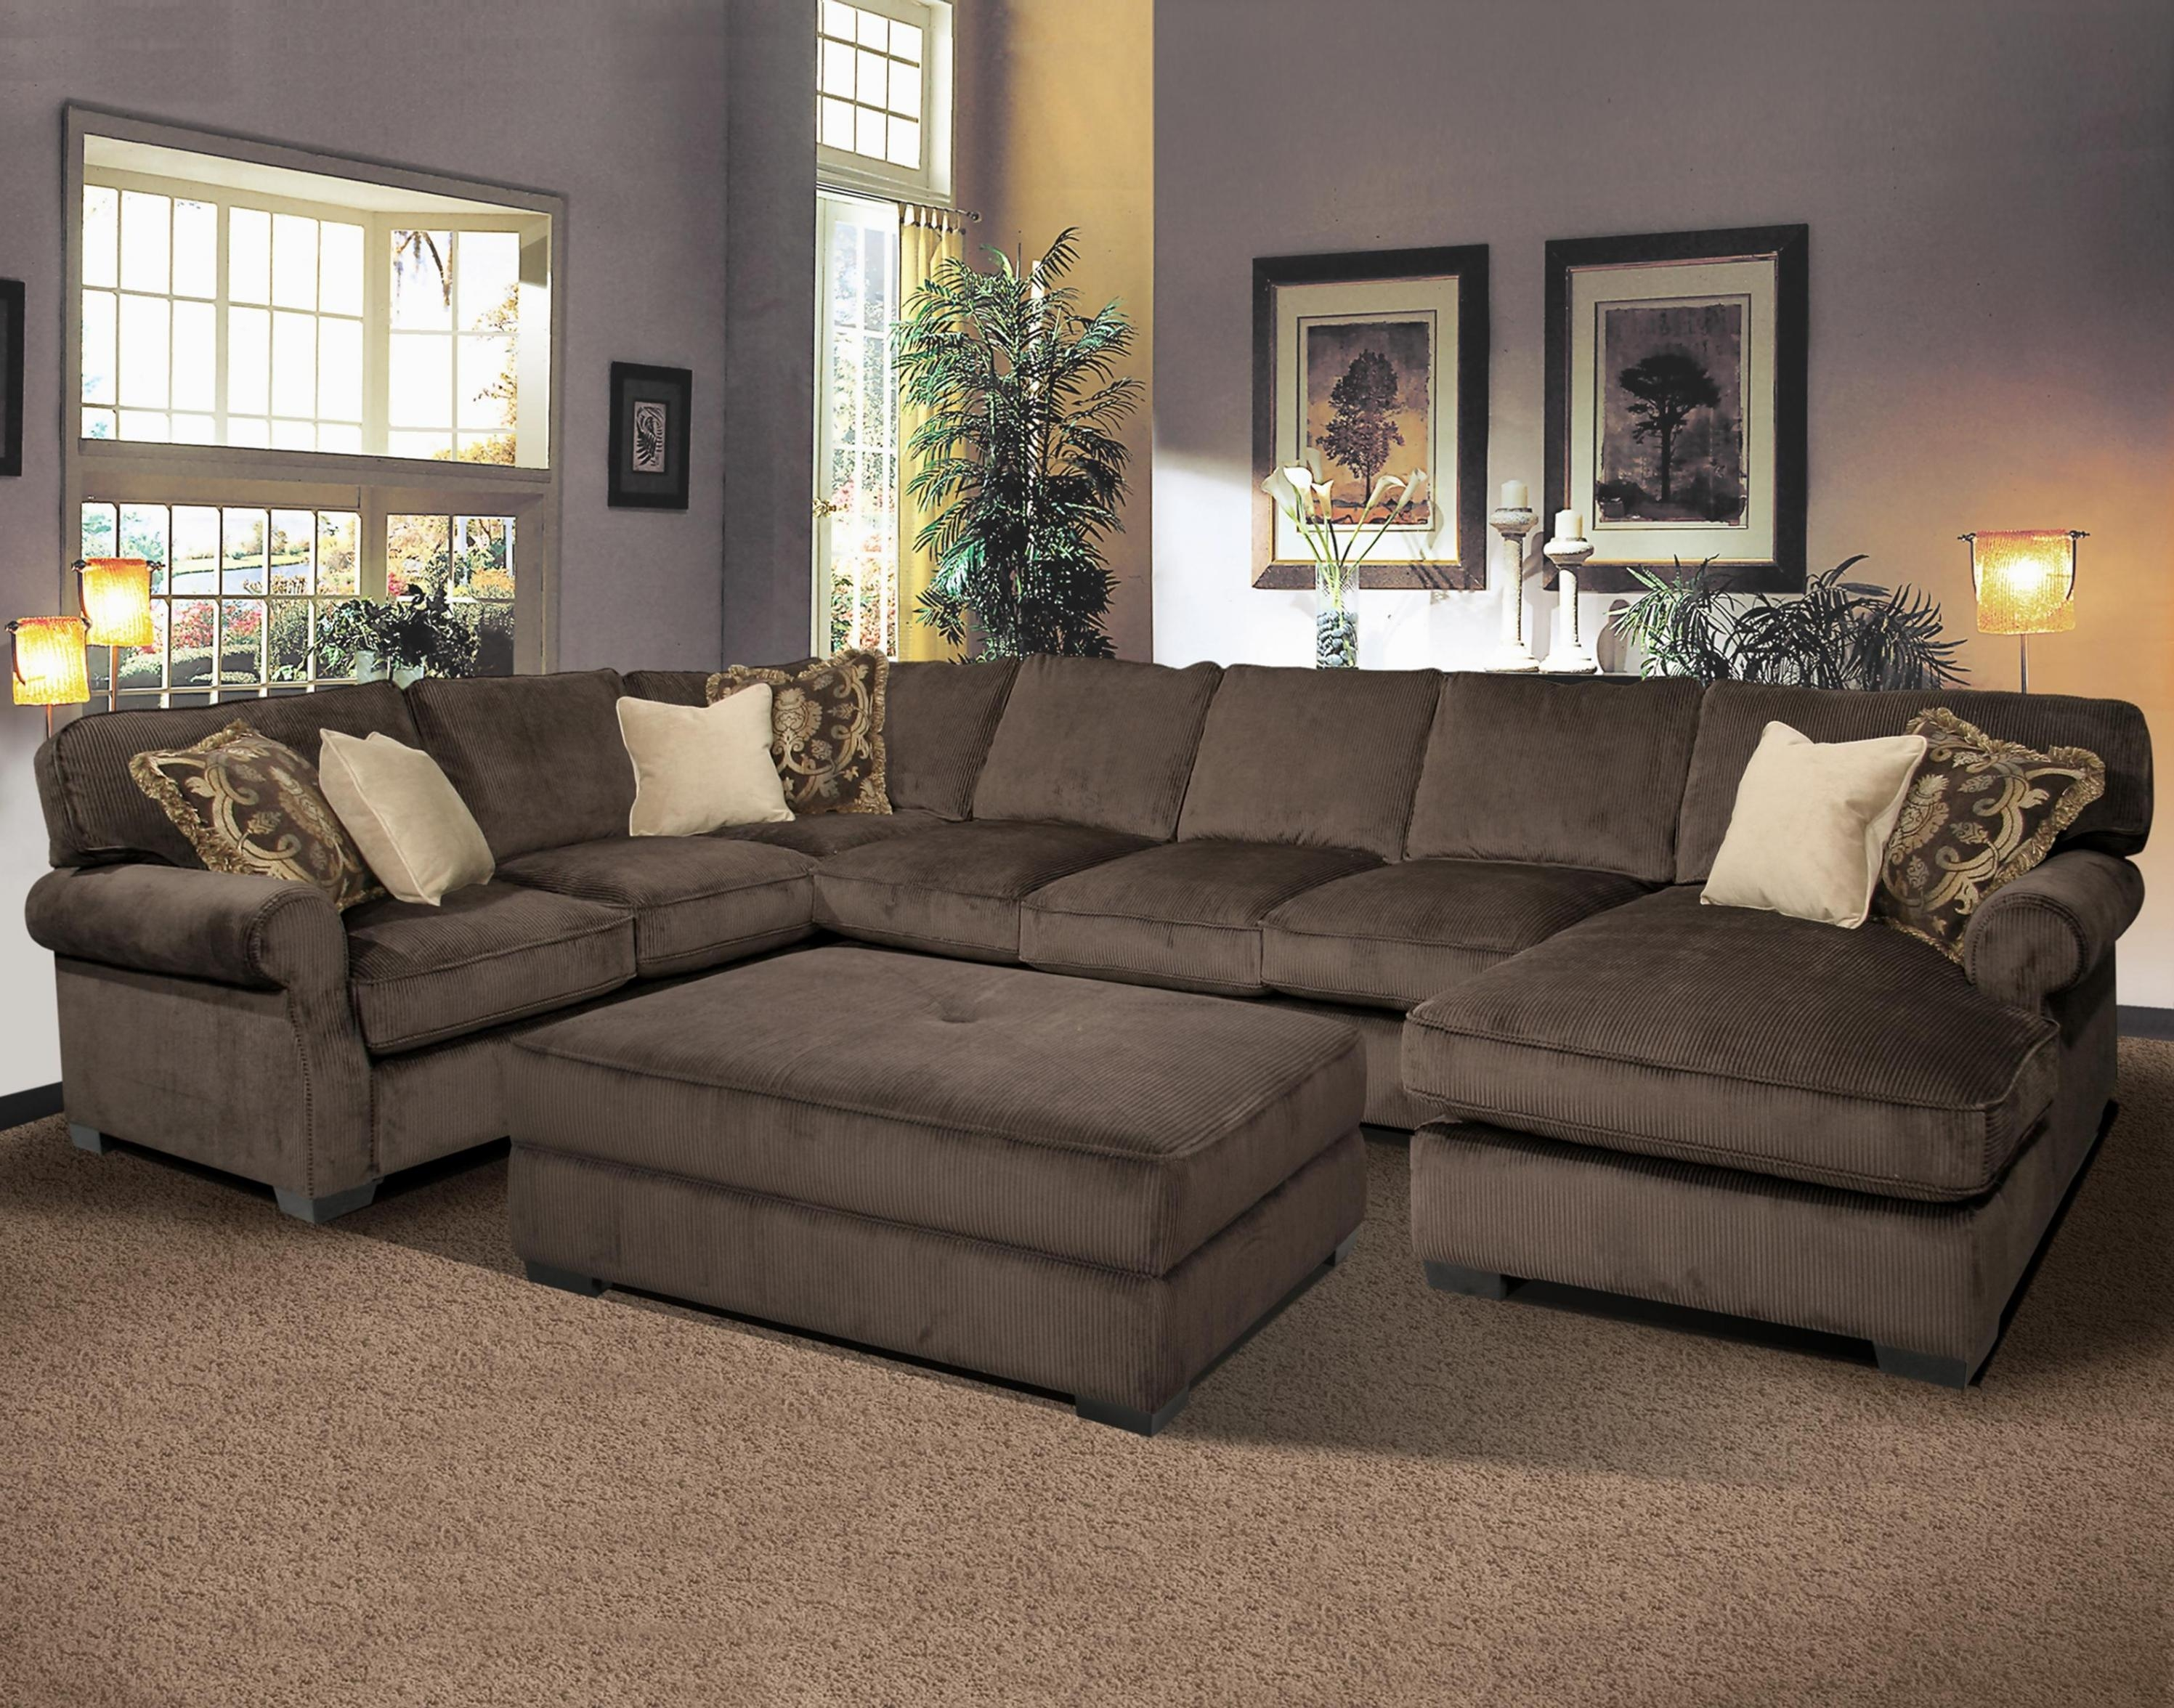 Beautiful Sectional Sofa With Cuddler Chaise | Sofa Ideas With Regard To Sectional With Ottoman And Chaise (View 4 of 20)